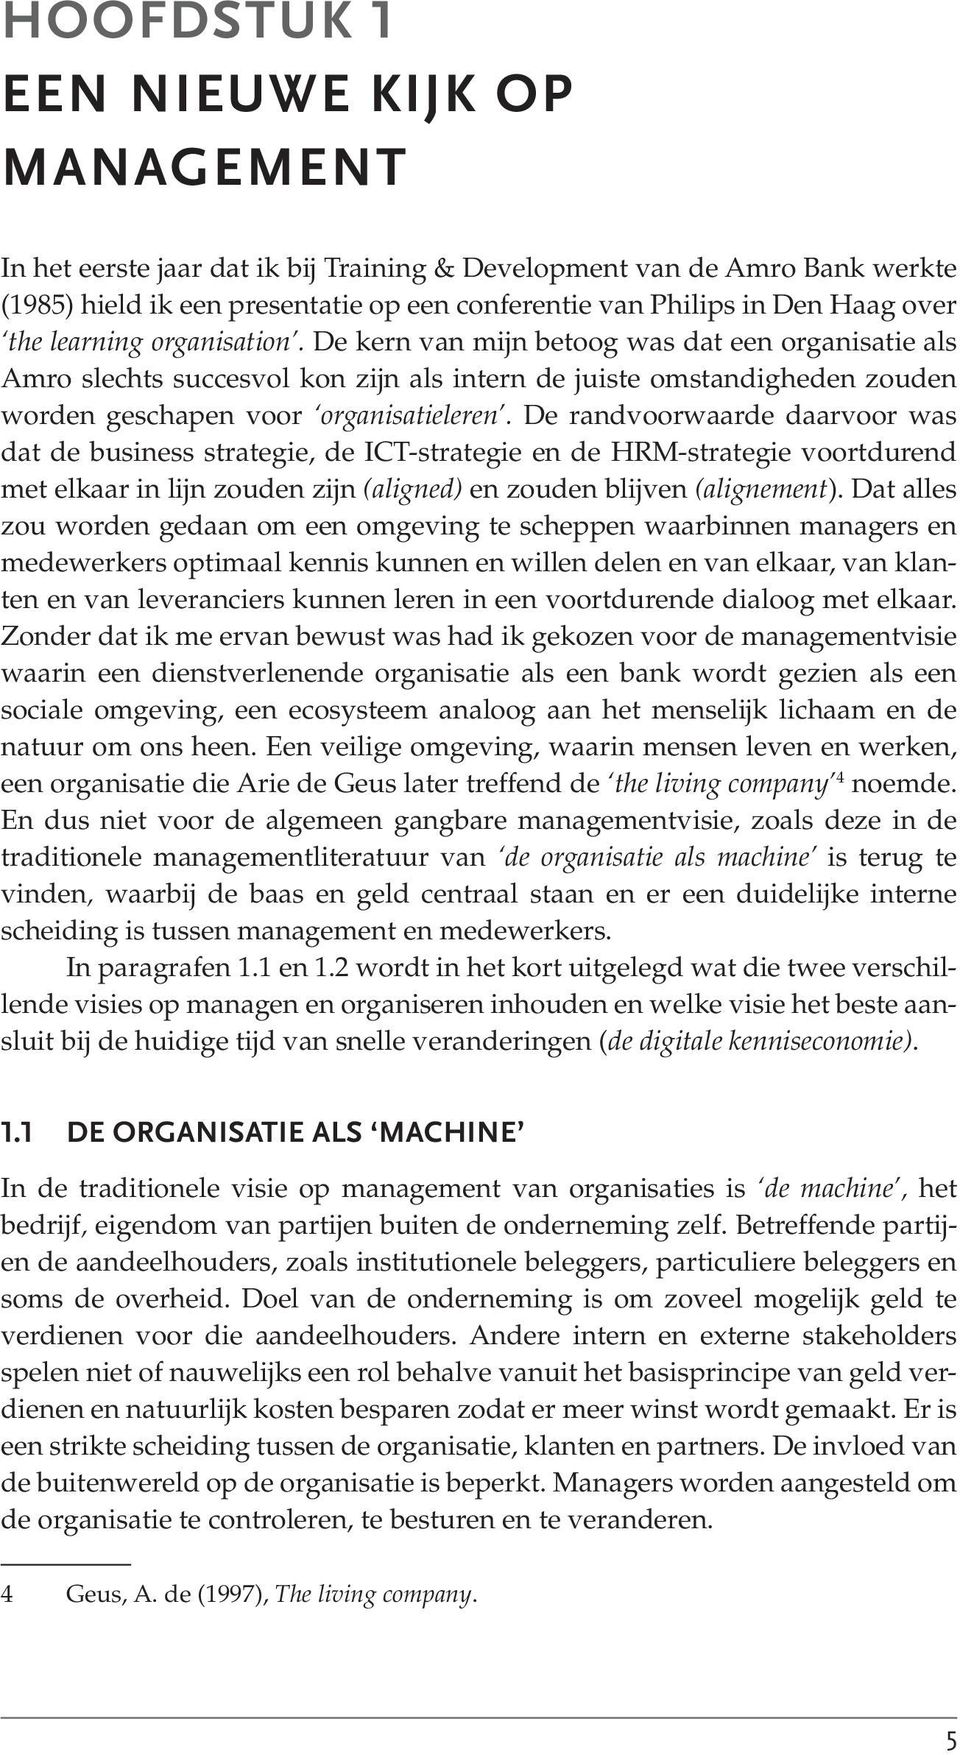 De randvoorwaarde daarvoor was dat de business strategie, de ICT-strategie en de HRM-strategie voortdurend met elkaar in lijn zouden zijn (aligned) en zouden blijven (alignement).